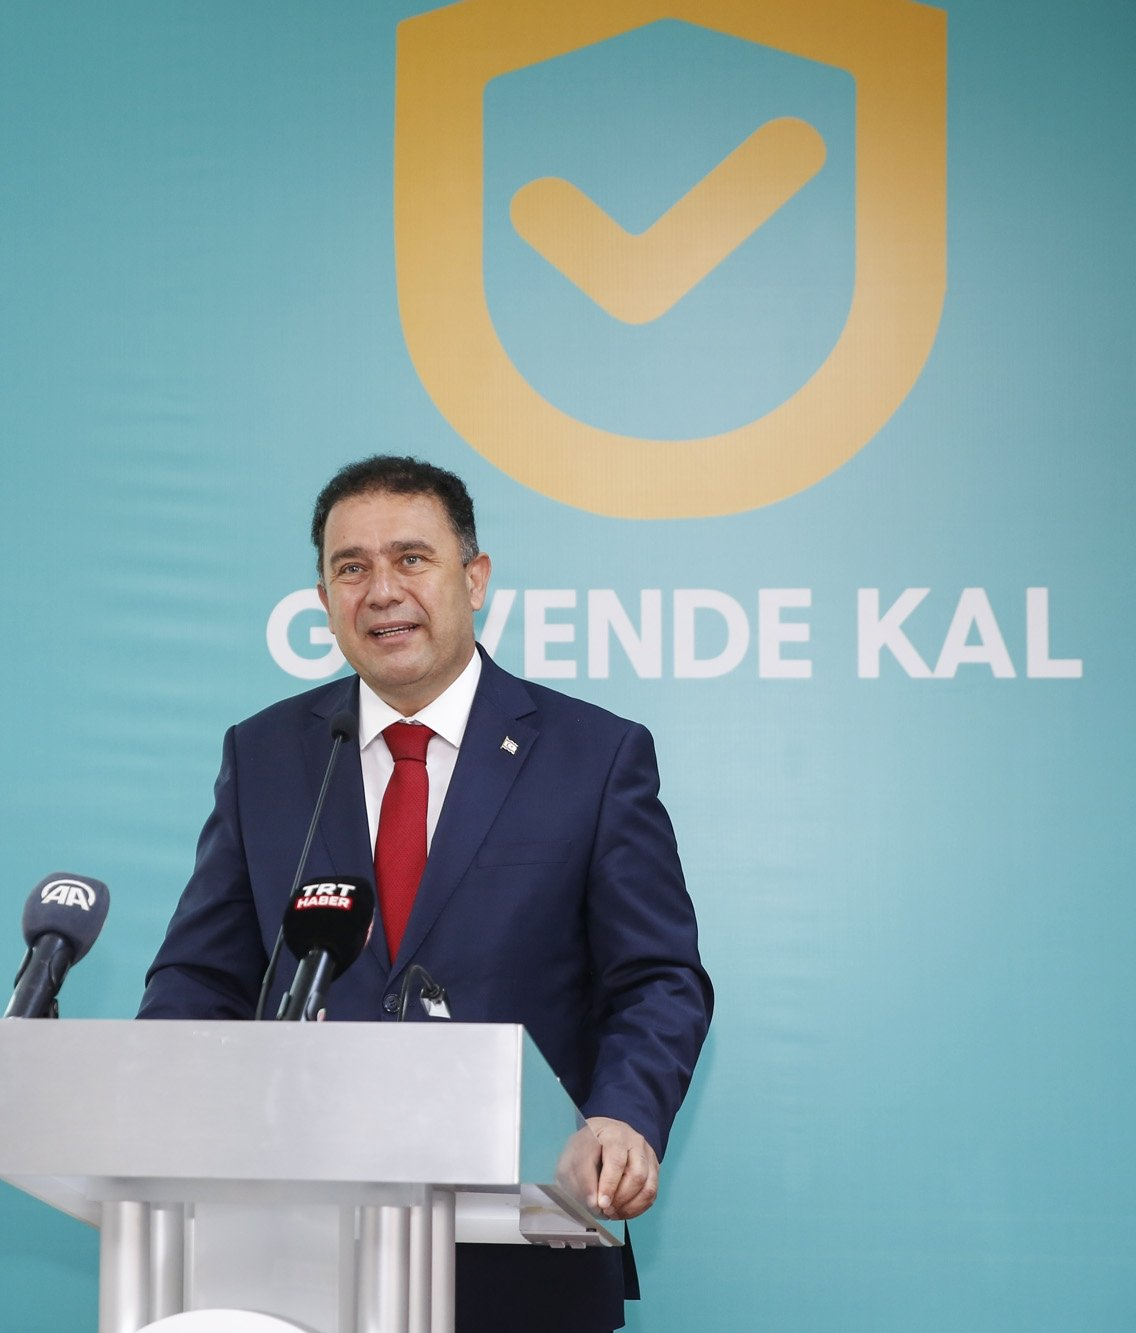 TRNC Prime Minister Ersan Saner speaks at the COVID-19 quarantine tracing system event in Lefkoşa, TRNC, April 12, 2021. (AA Photo)